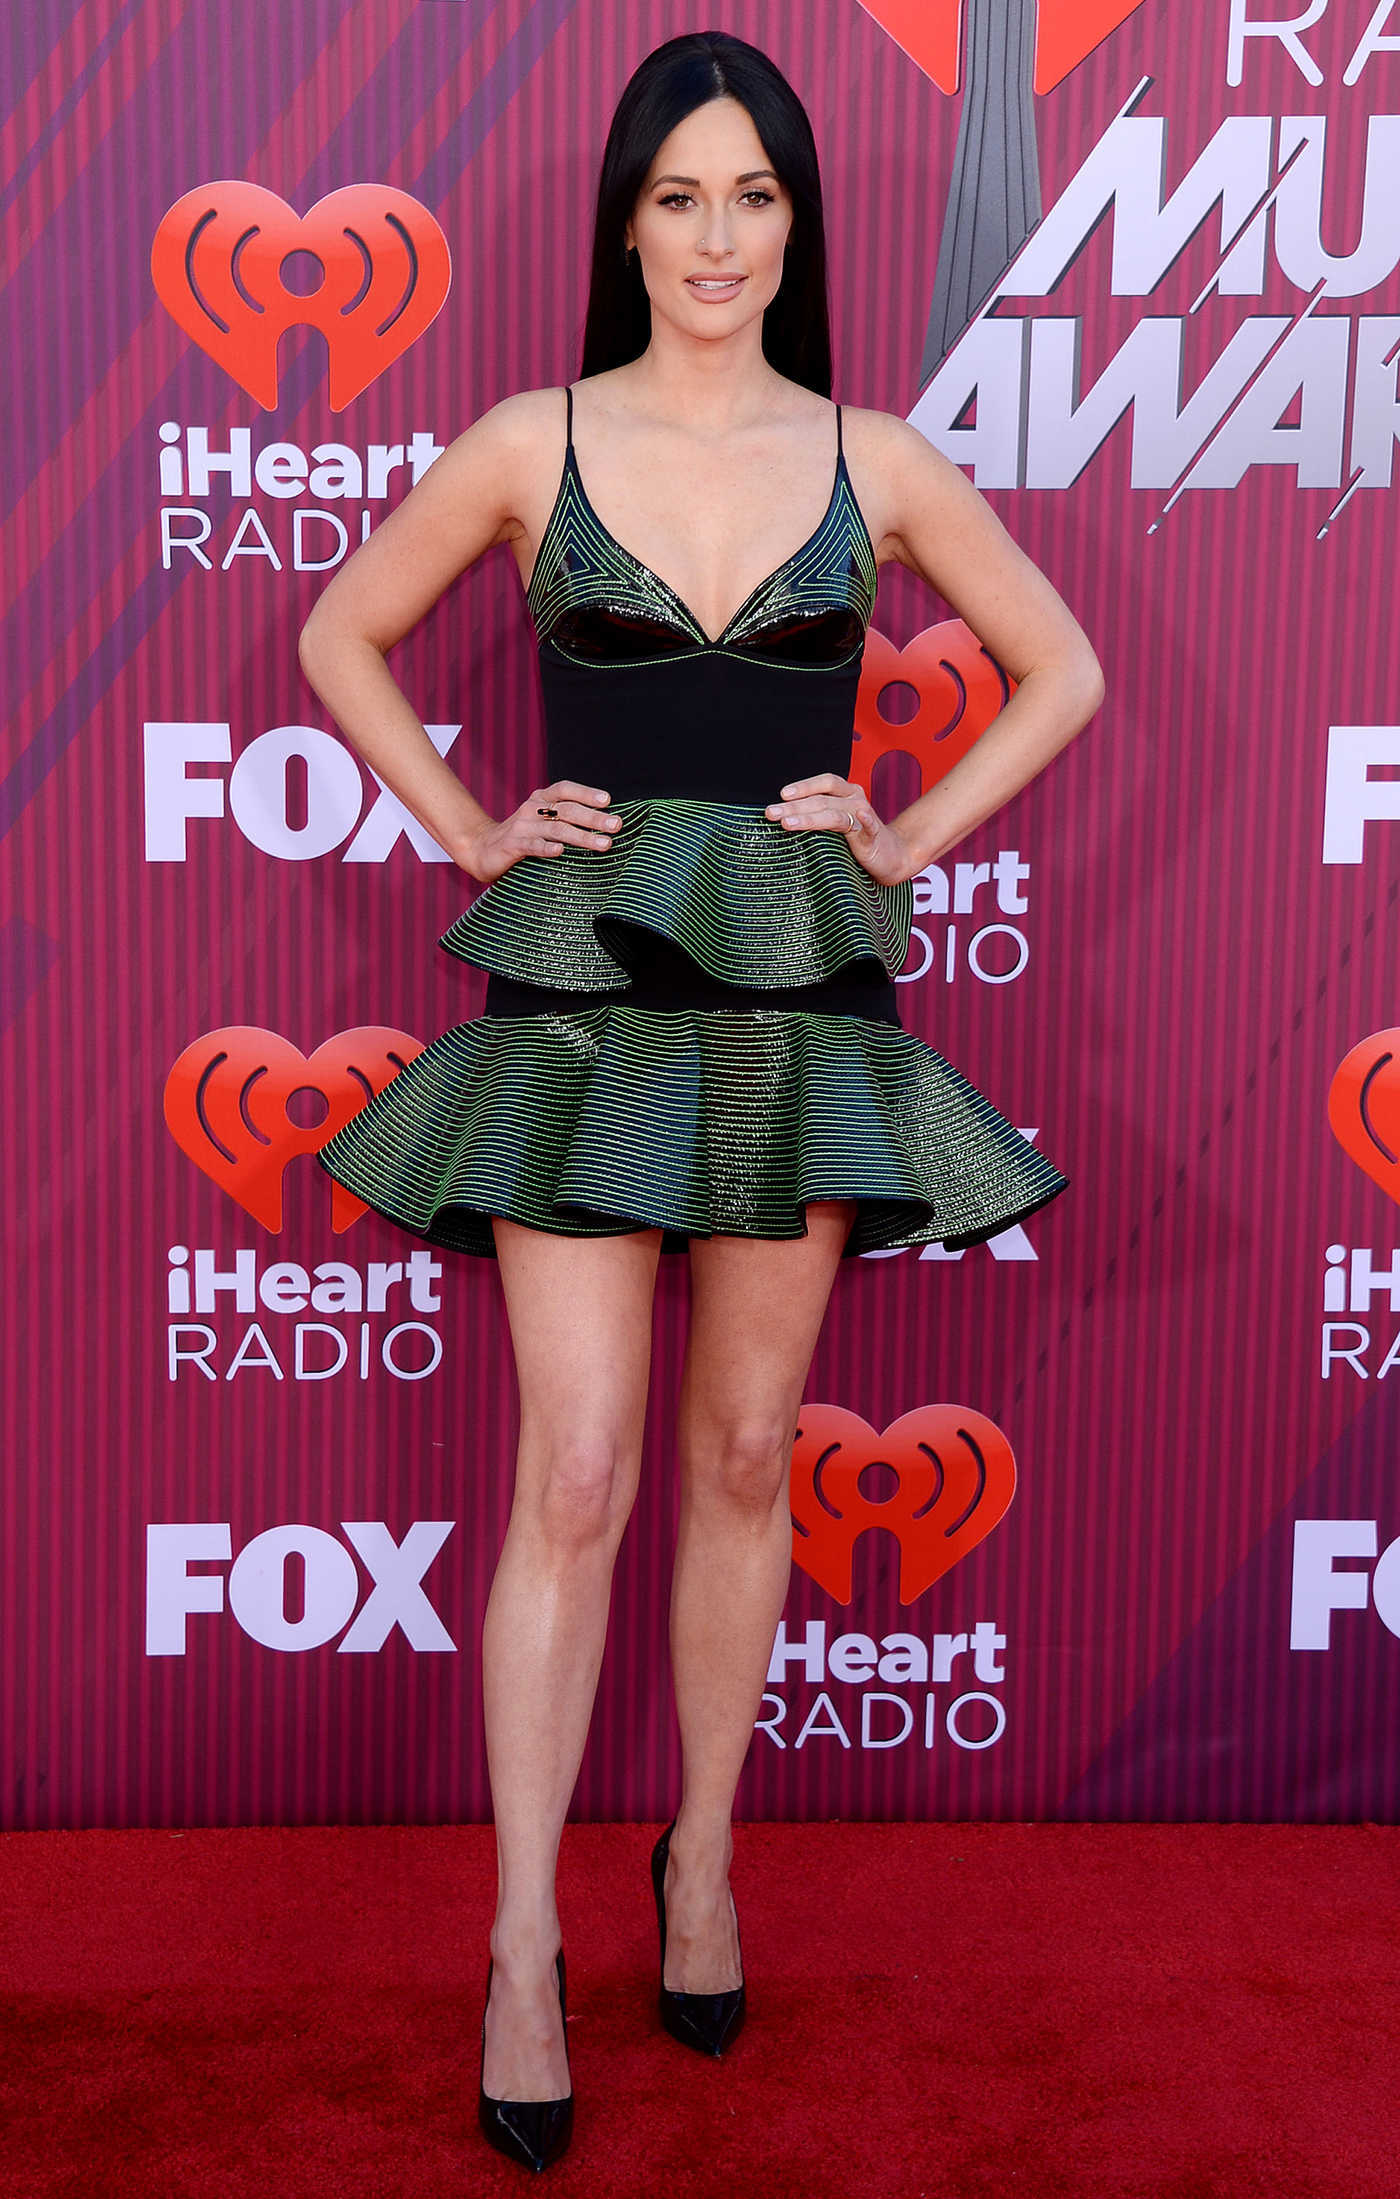 Kacey Musgraves Attends 2019 iHeartRadio Music Awards at Microsoft Theater in LA 03/14/2019